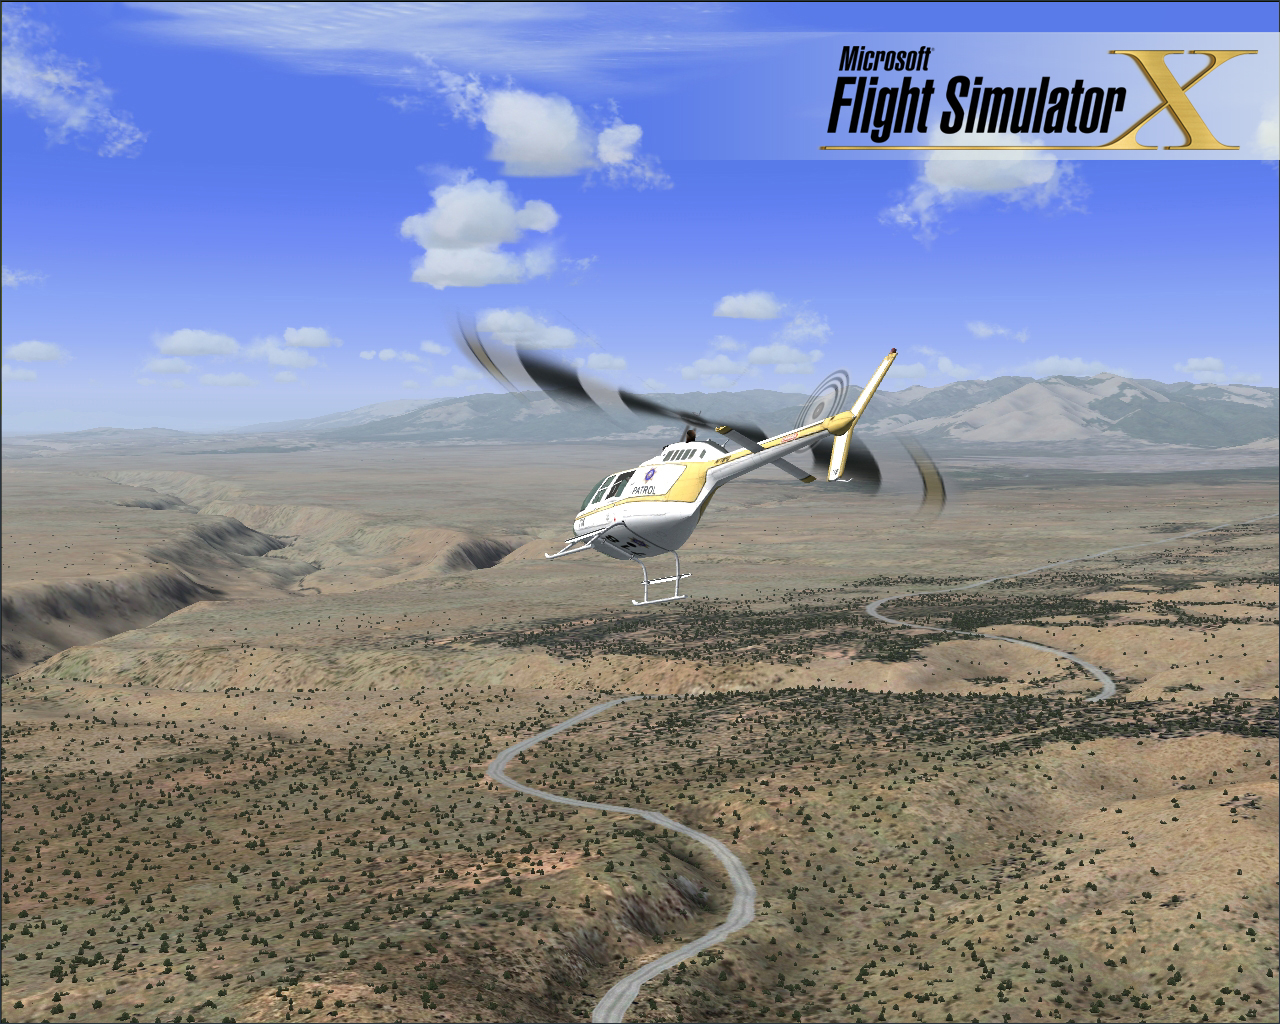 Microsoft Flight Simulator X (Deluxe Edition) - PC - GameSpy